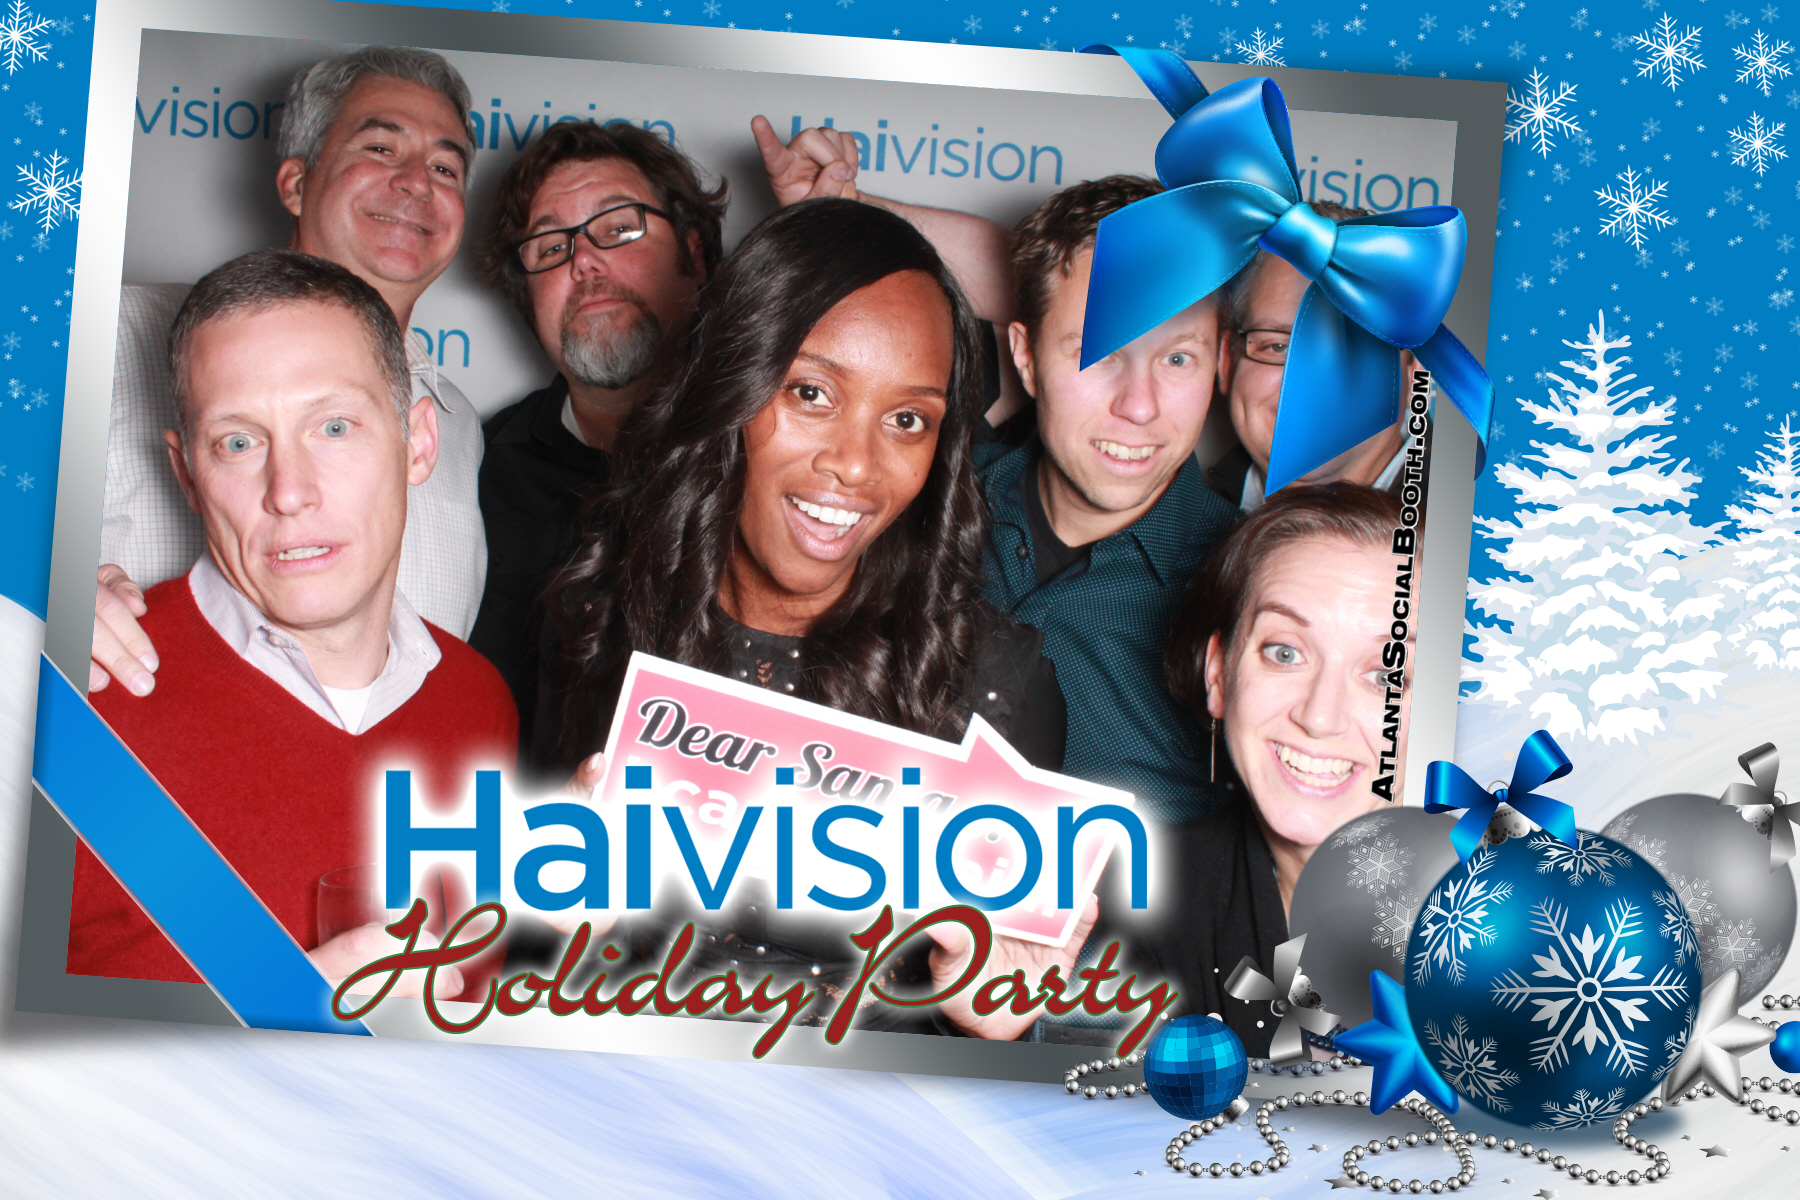 Haivision Holiday Party